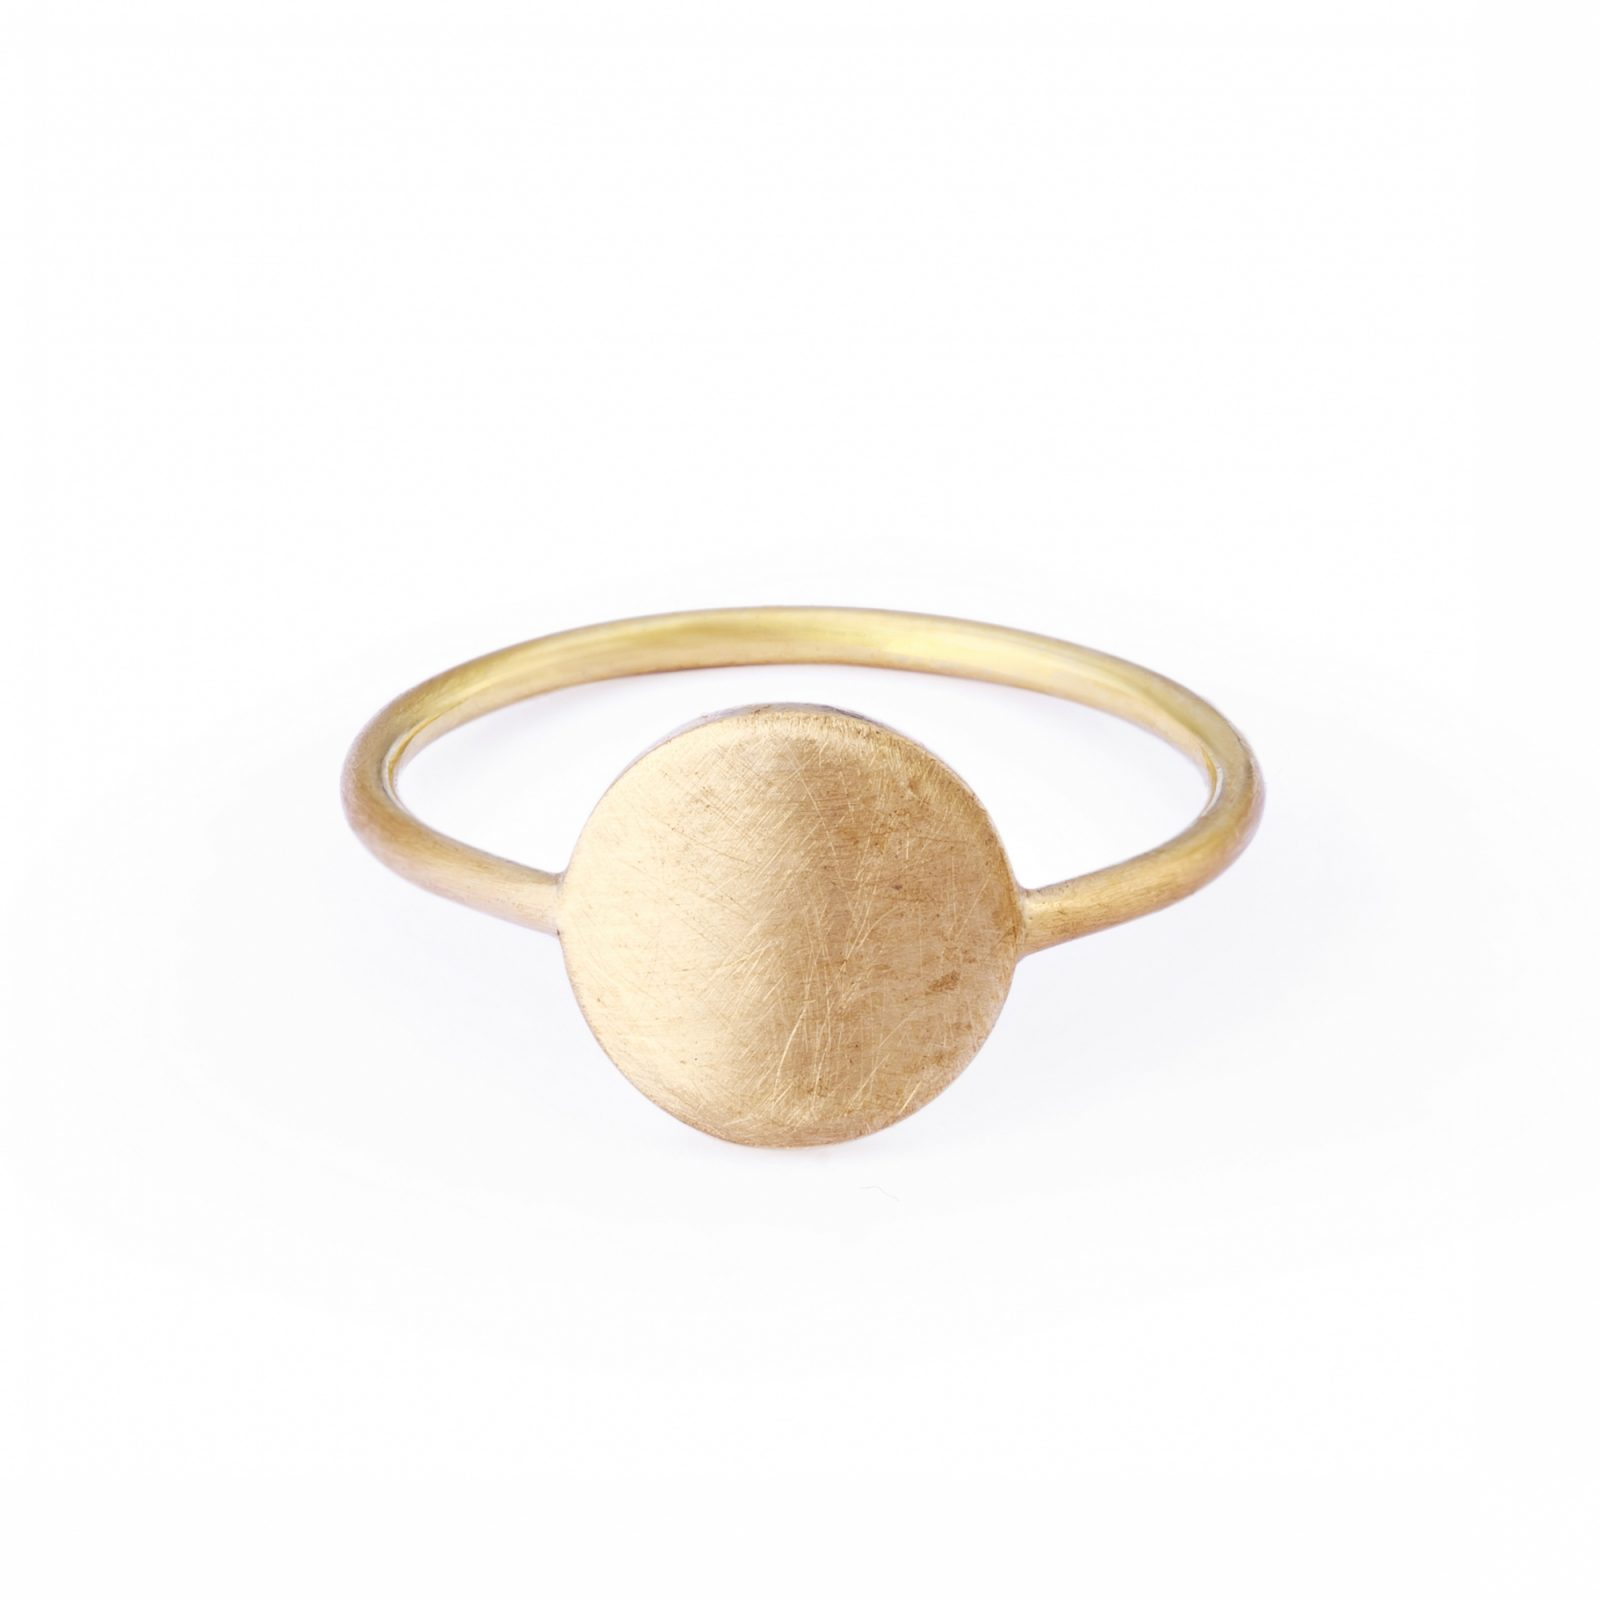 Sia Taylor KR2 Y Yellow Gold 8mm Moon Ring WB